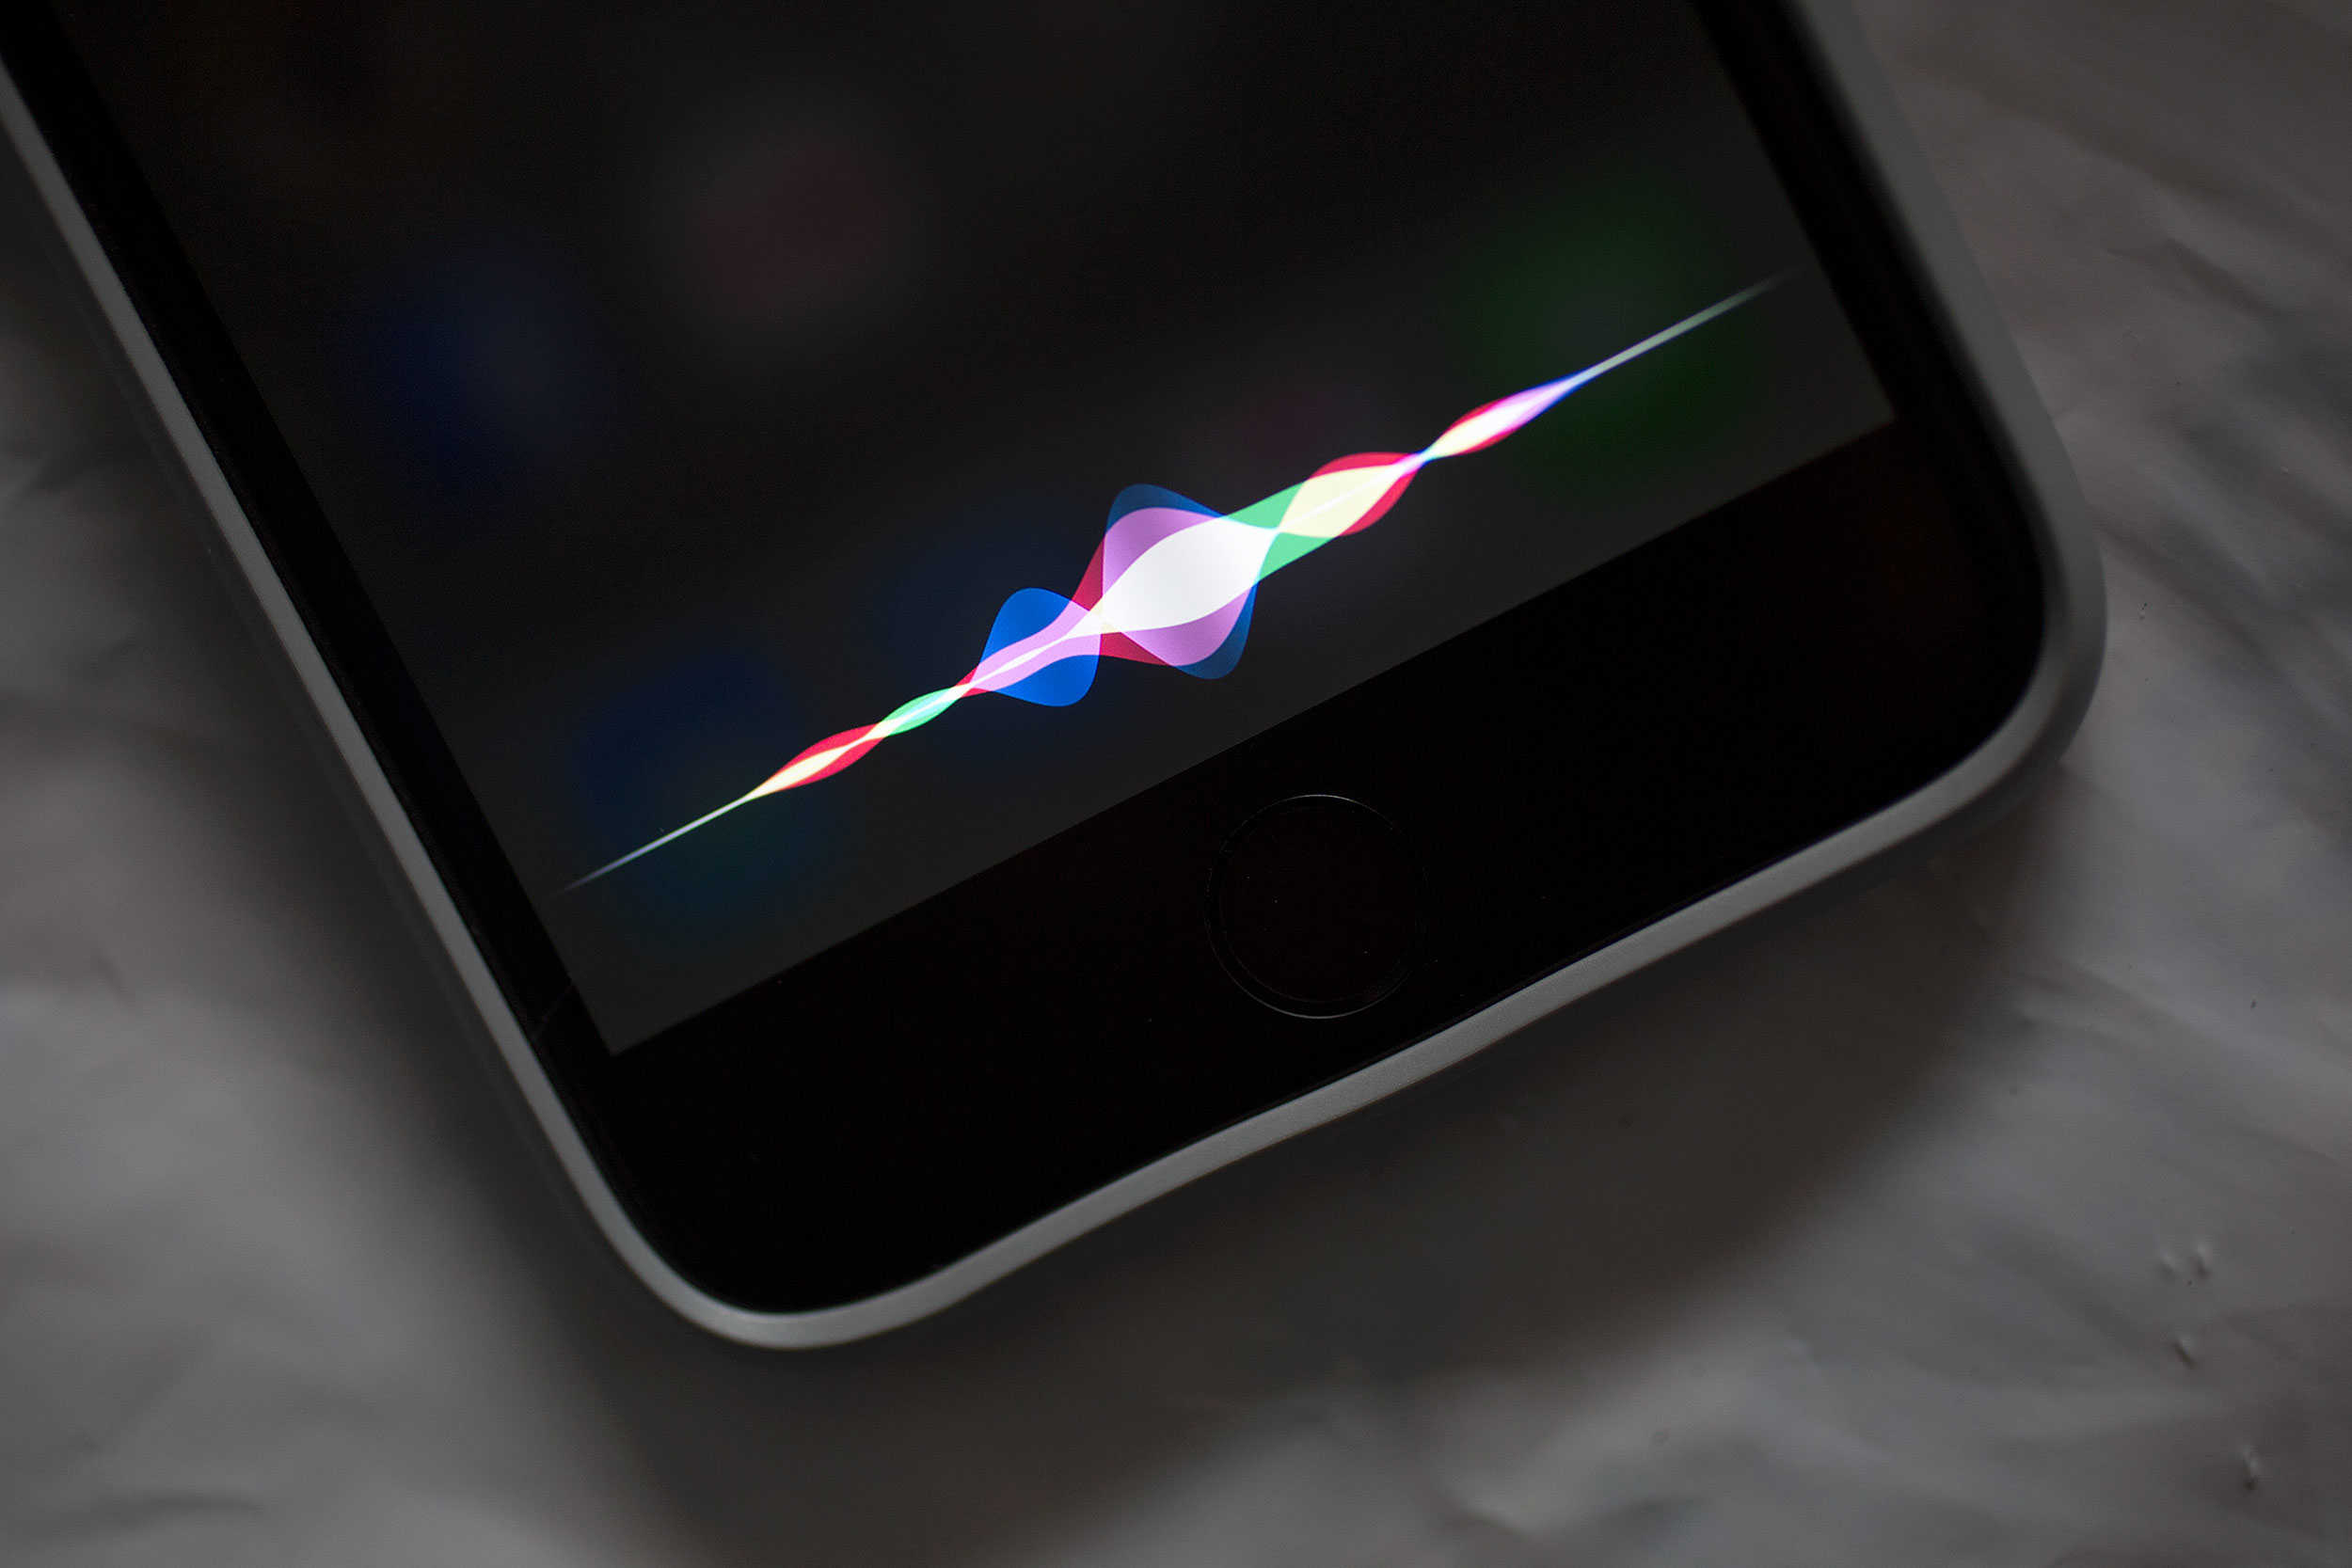 Cult of Android - Hackers can silently access Siri and